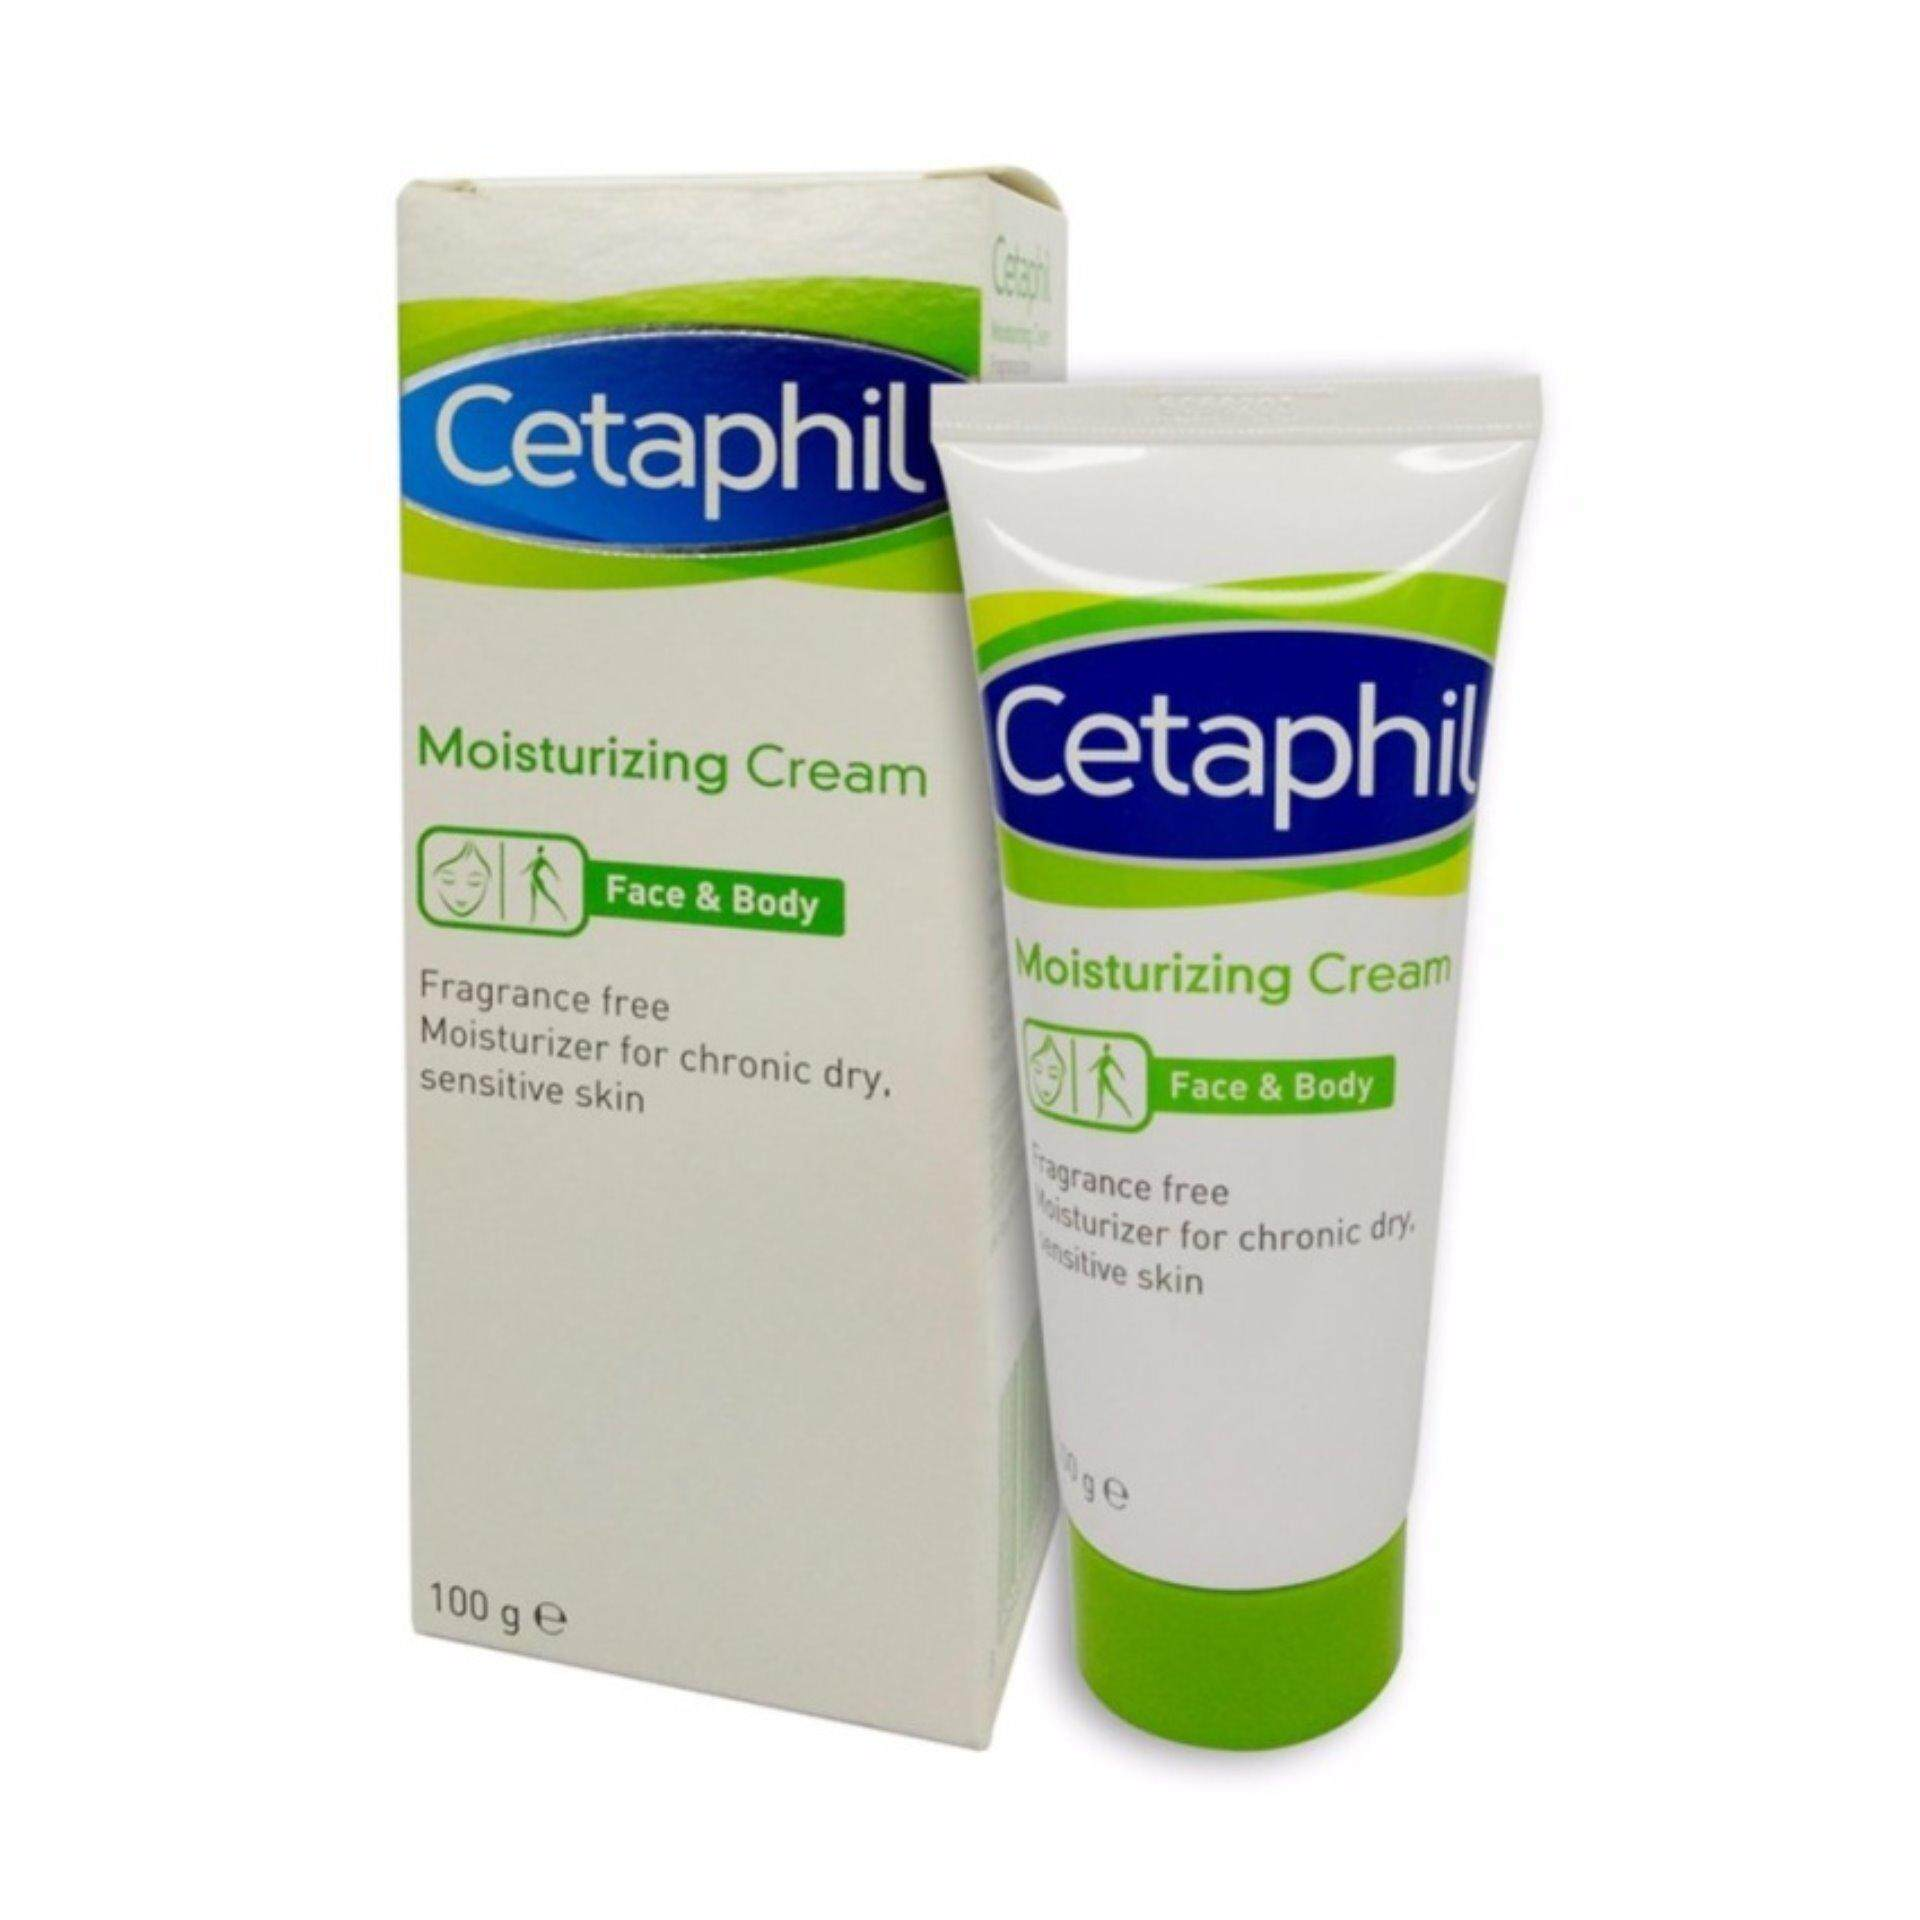 Cetaphil Cream Baby Face Ujdrniajcy 2018 Daily Lotion With Shea Butter 400 Ml The Paraben Mineral Oil Free For Babies Line Includes Colorant Ultra Moisturizing Wash Well Just Like Paige I Too Had No Luck